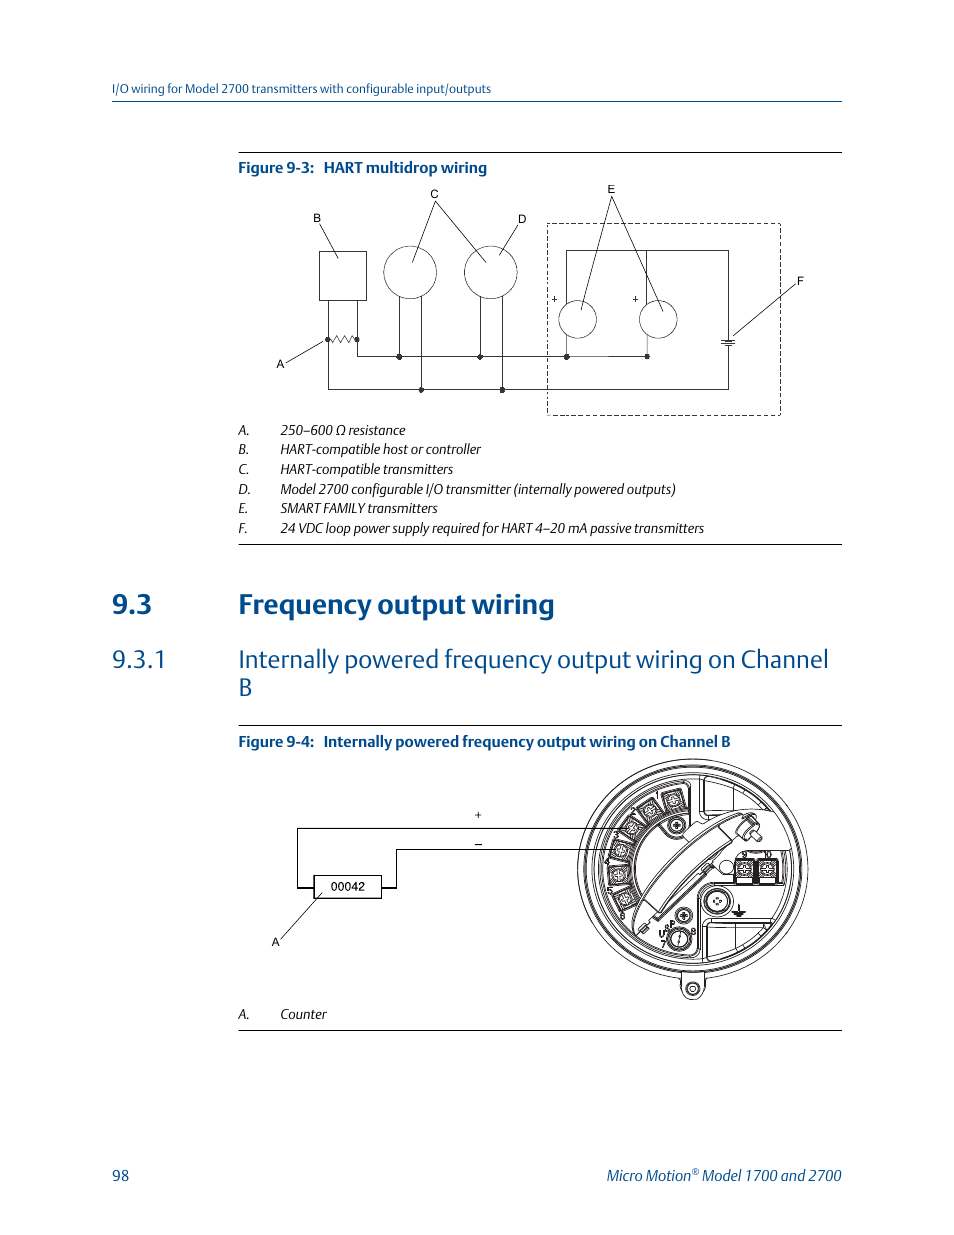 Frequency Output Wiring  3 Frequency Output Wiring